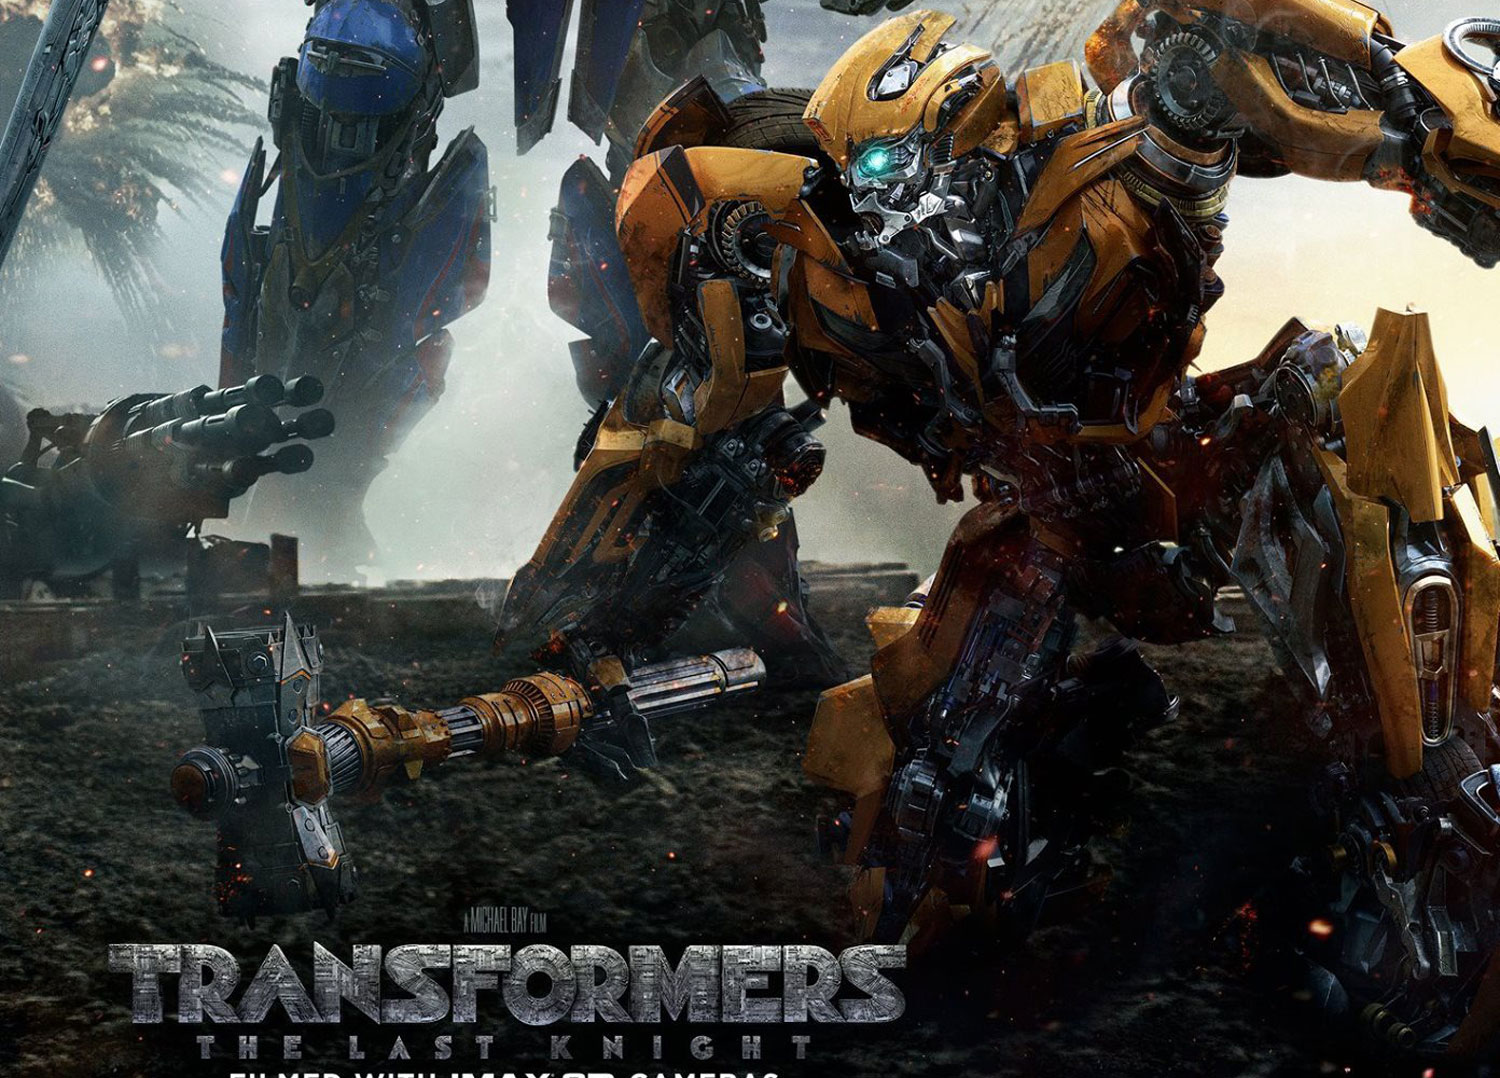 Transformers the last knight wins weekend box office box office movies just jared - Transformers 2 box office ...